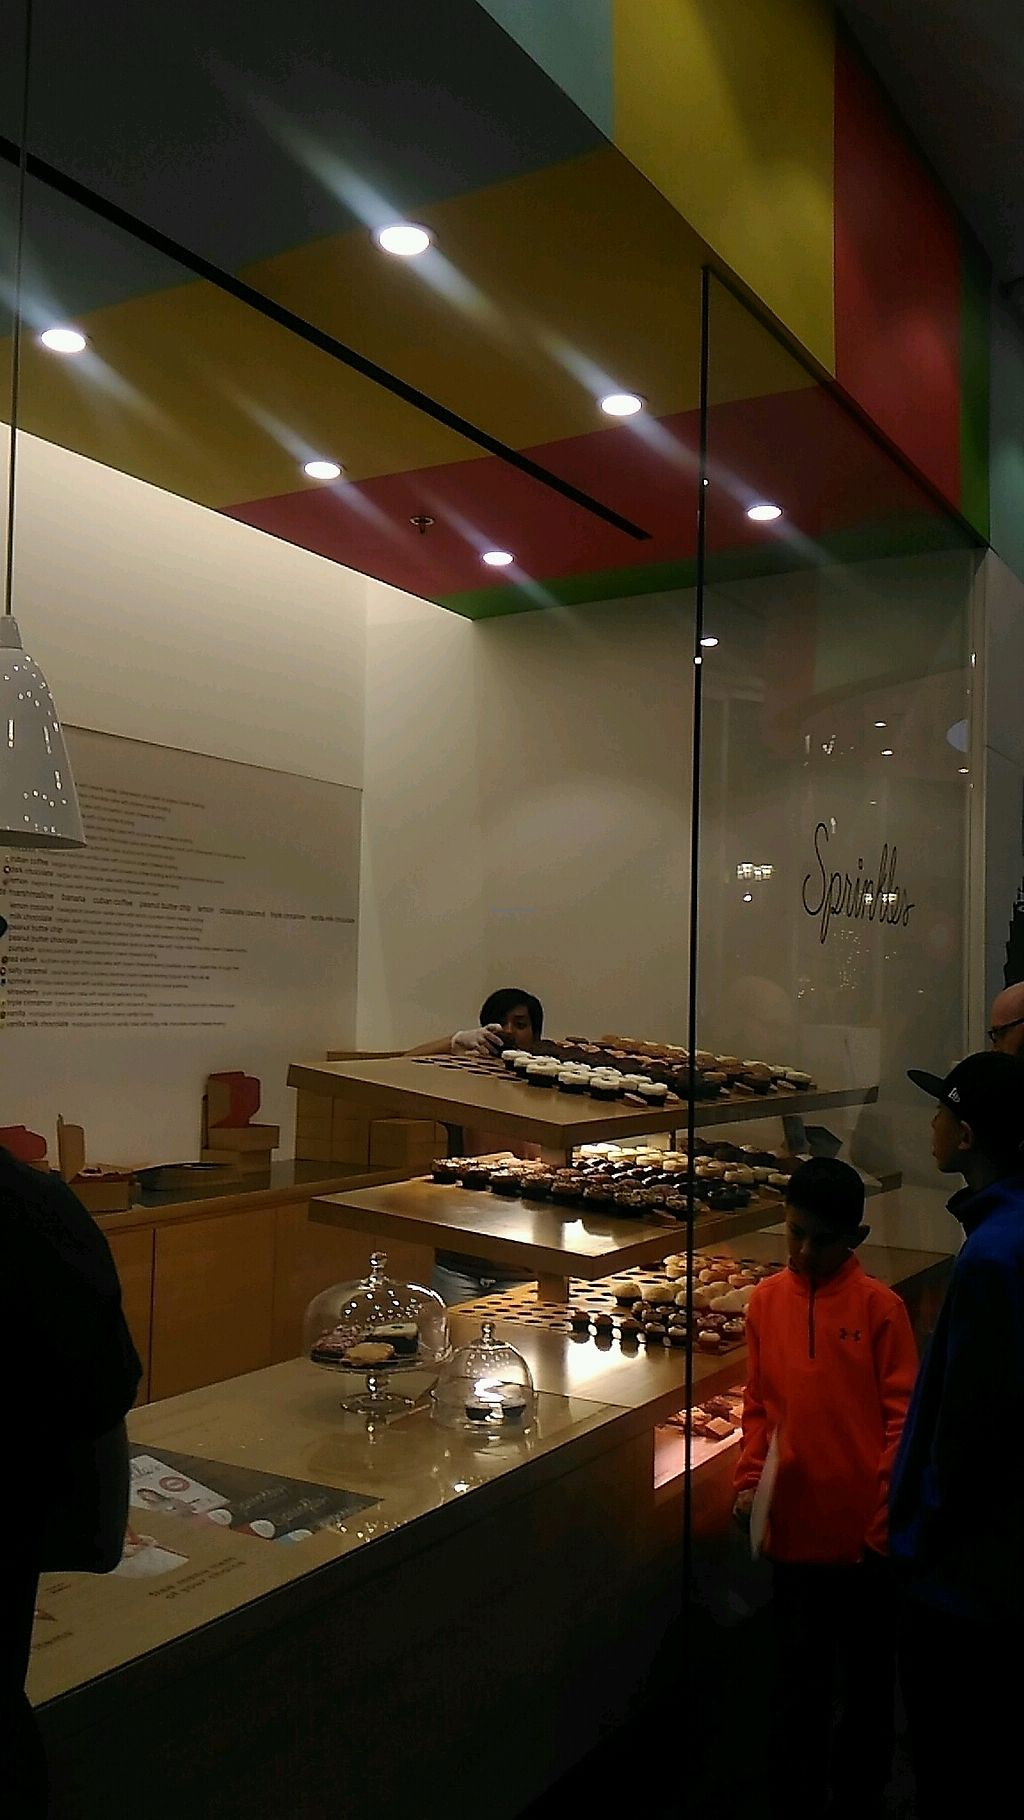 """Photo of Sprinkles Cupcakes  by <a href=""""/members/profile/QuothTheRaven"""">QuothTheRaven</a> <br/>inside <br/> March 19, 2018  - <a href='/contact/abuse/image/101018/373051'>Report</a>"""